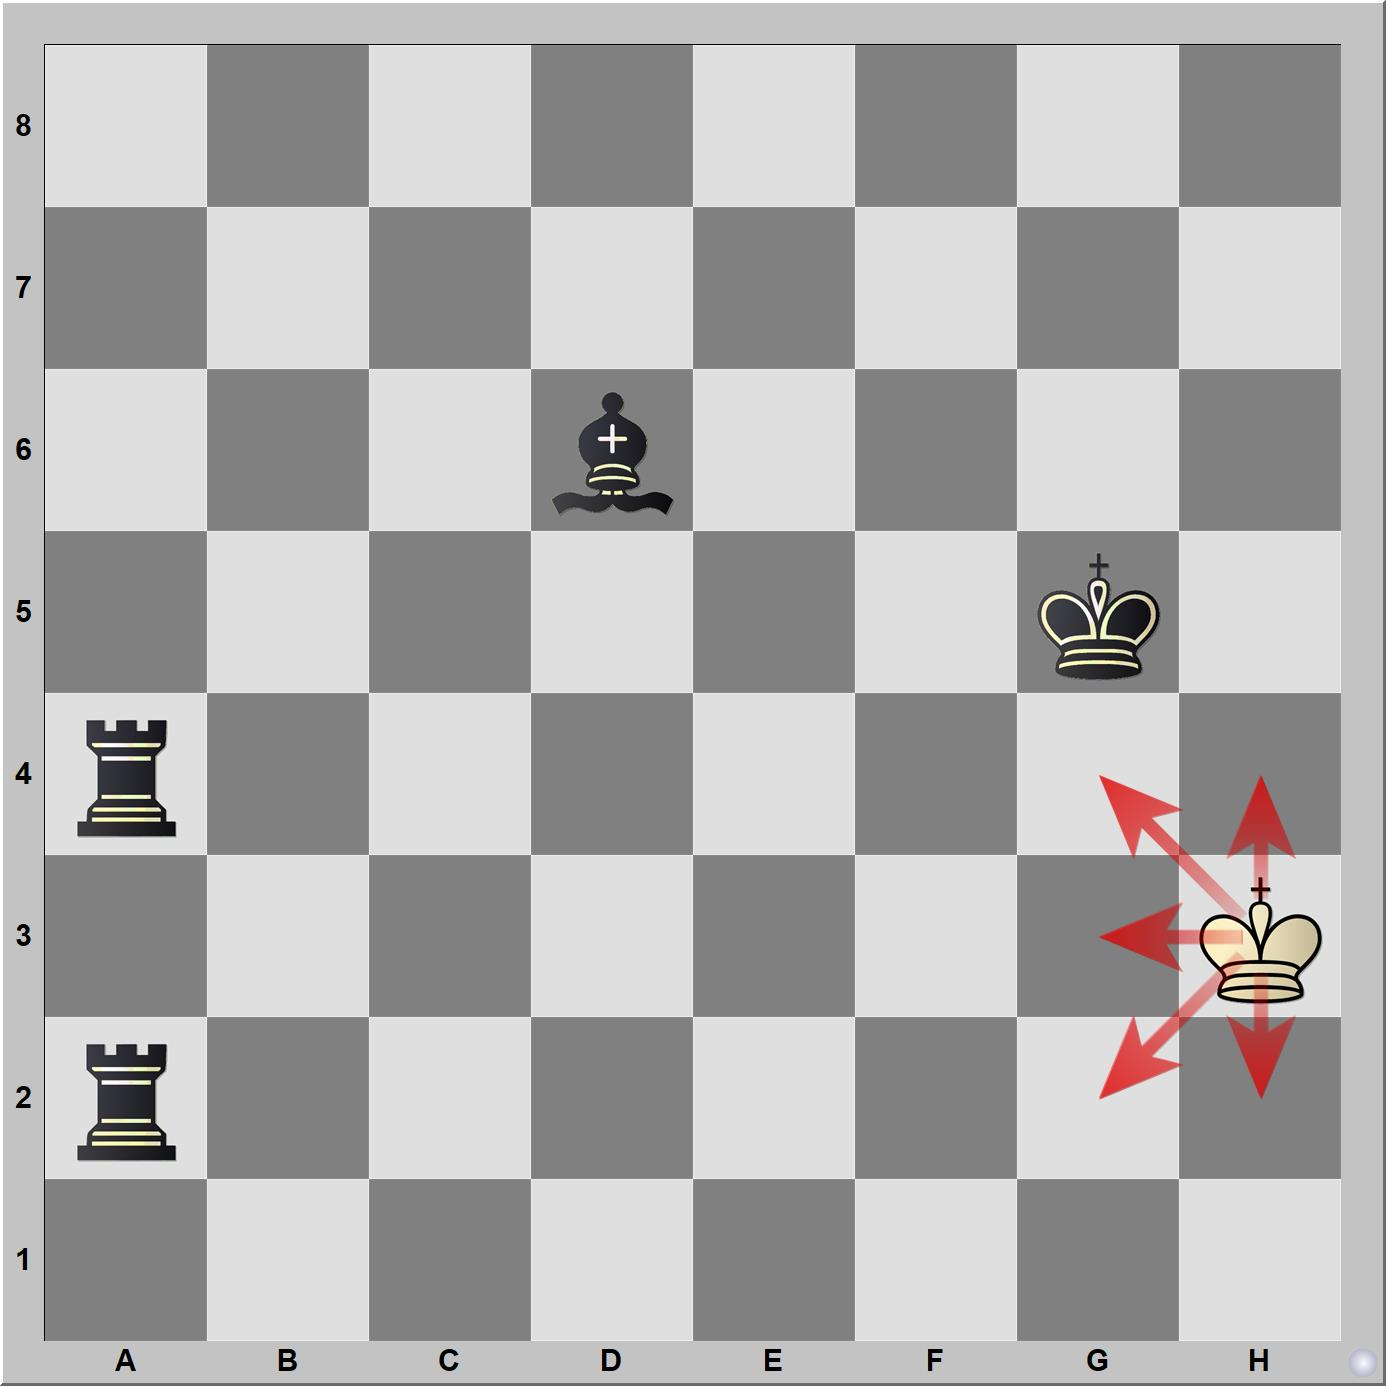 When the king cannot move, the game ends in a stalemate or draw.